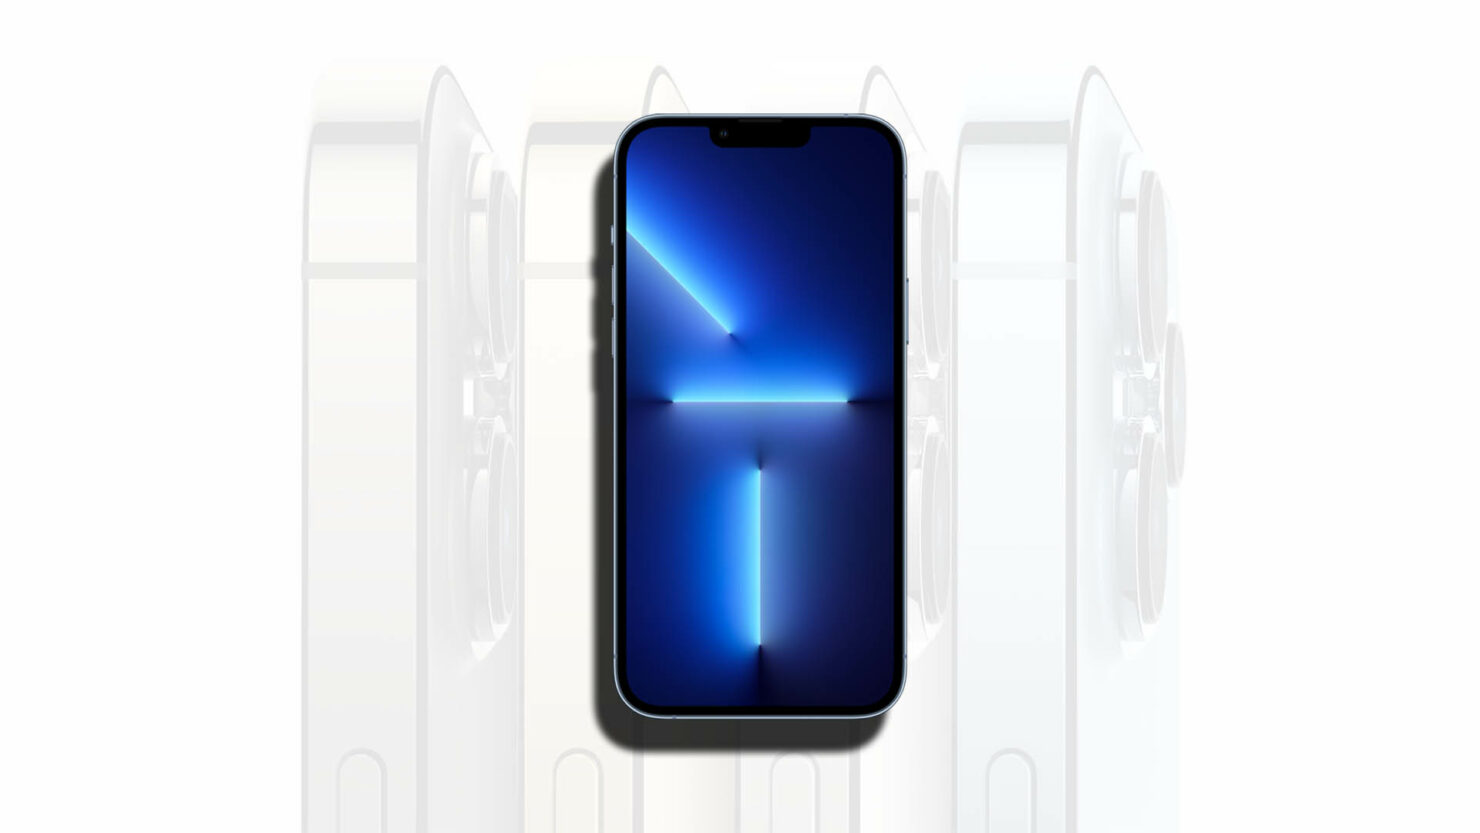 Apple's iPhone 13 Pro Max Can Reach Wired Fast-Charging Speeds of up to 27W